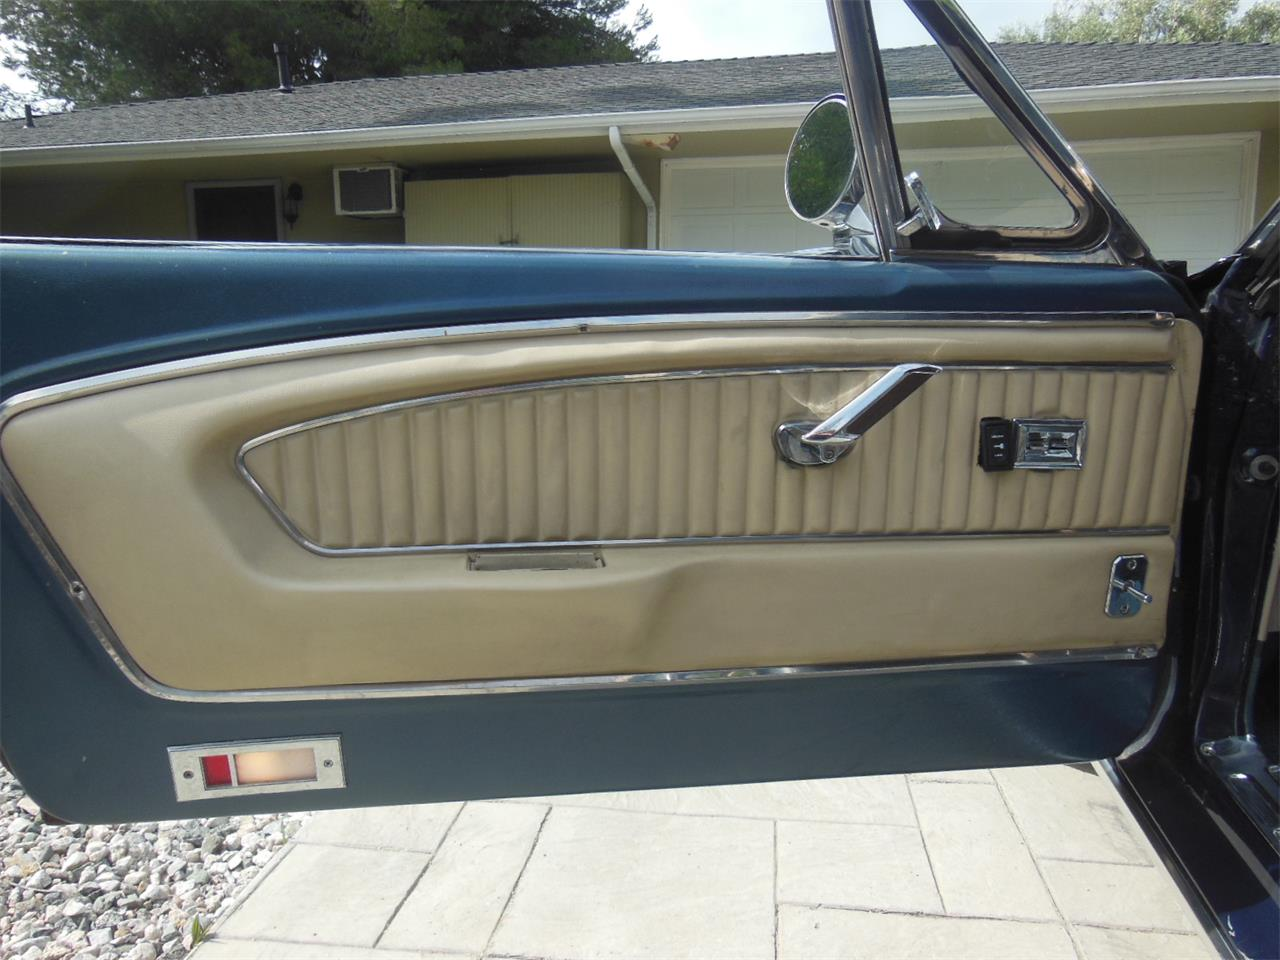 Large Picture of '66 Mustang located in West Hills California - $19,900.00 Offered by a Private Seller - QEXU